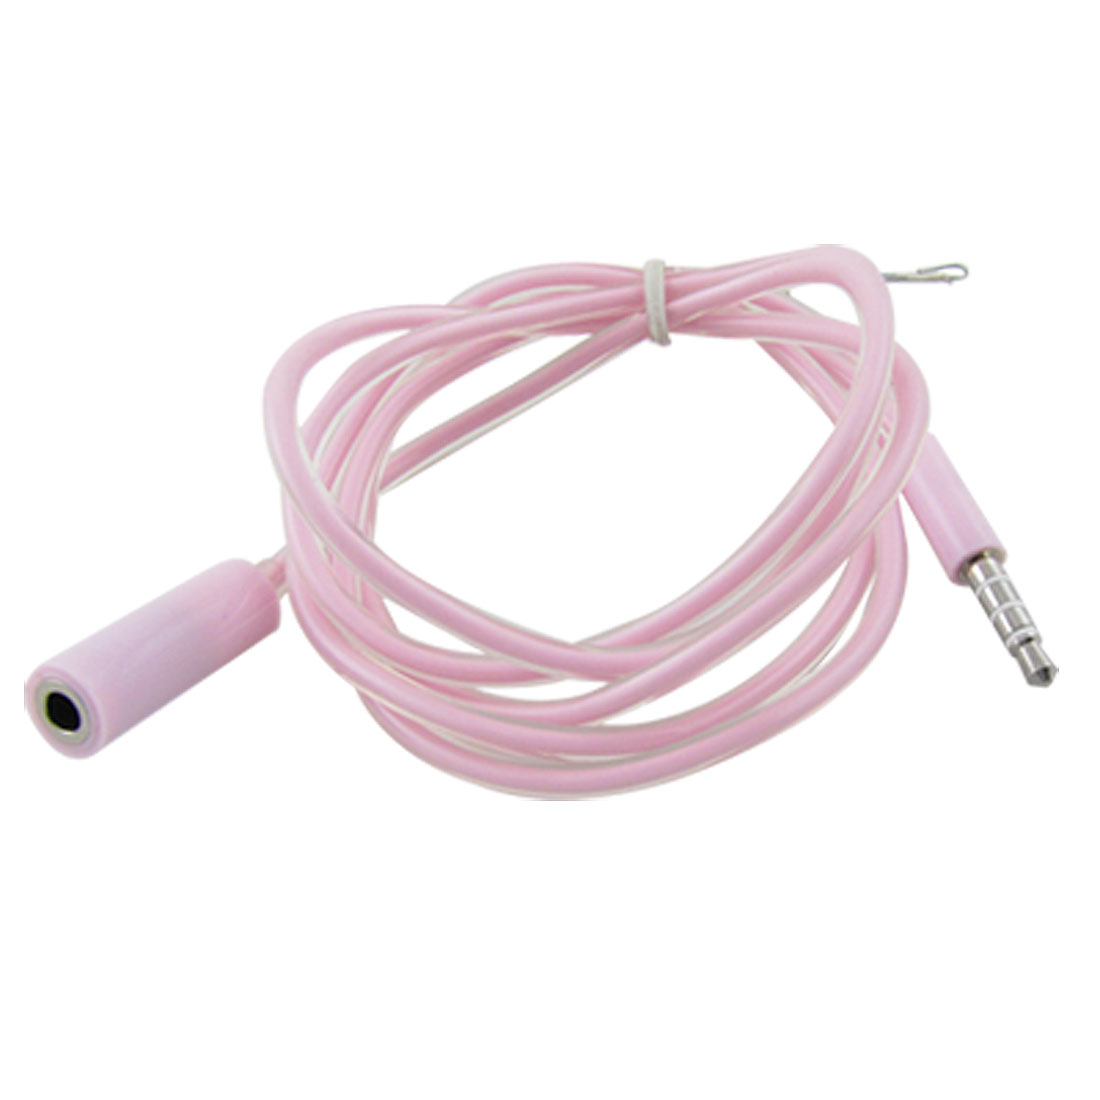 3.2FT 3.5mm M/F Extension Cable Pink for iPhone 3G 3GS